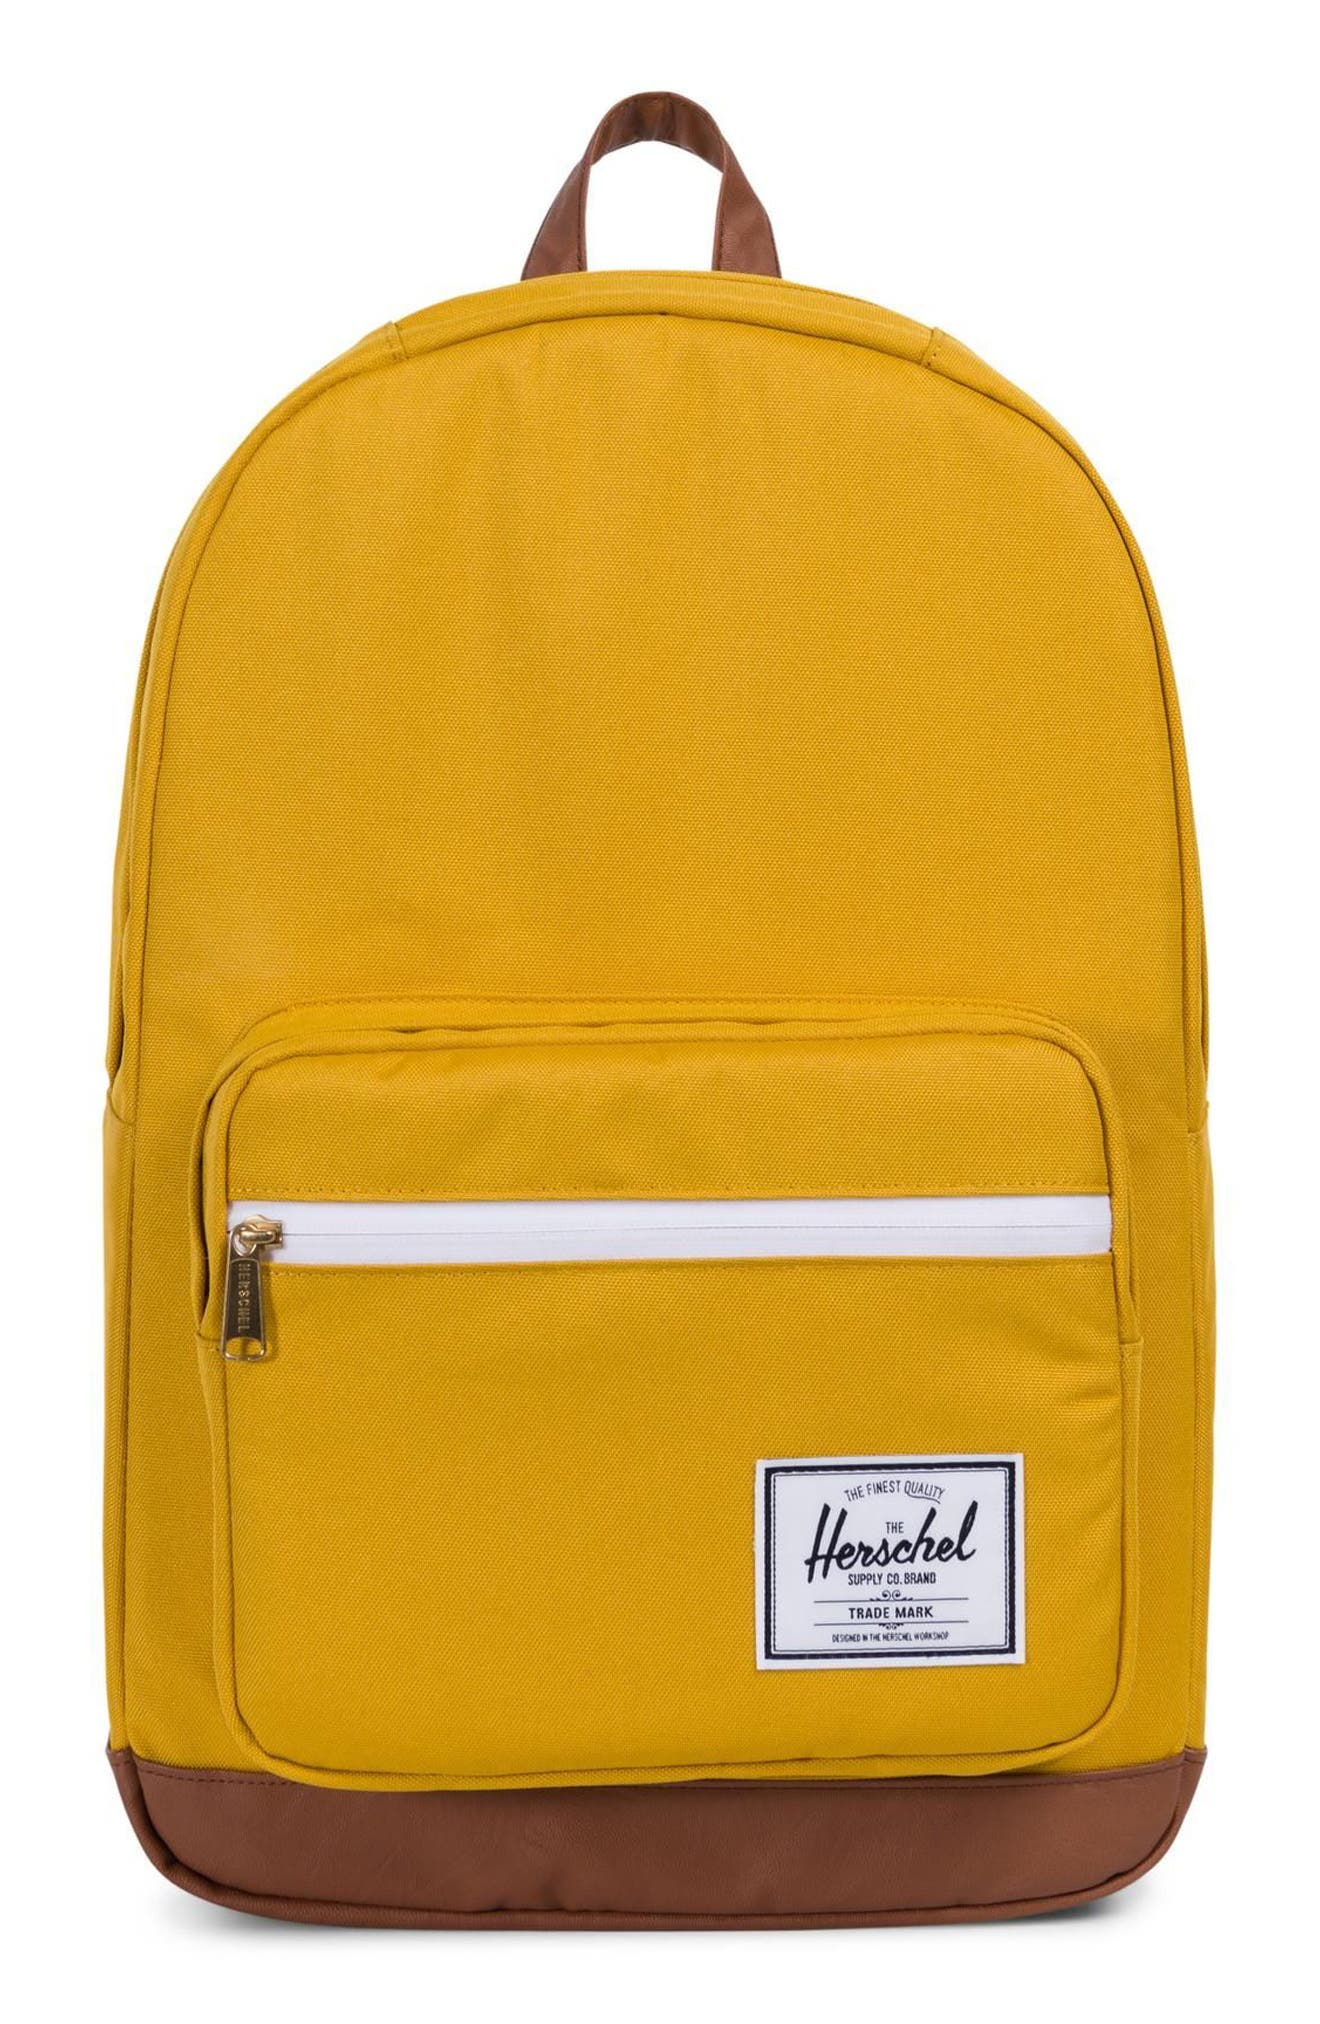 'Pop Quiz' Backpack,                             Main thumbnail 1, color,                             700